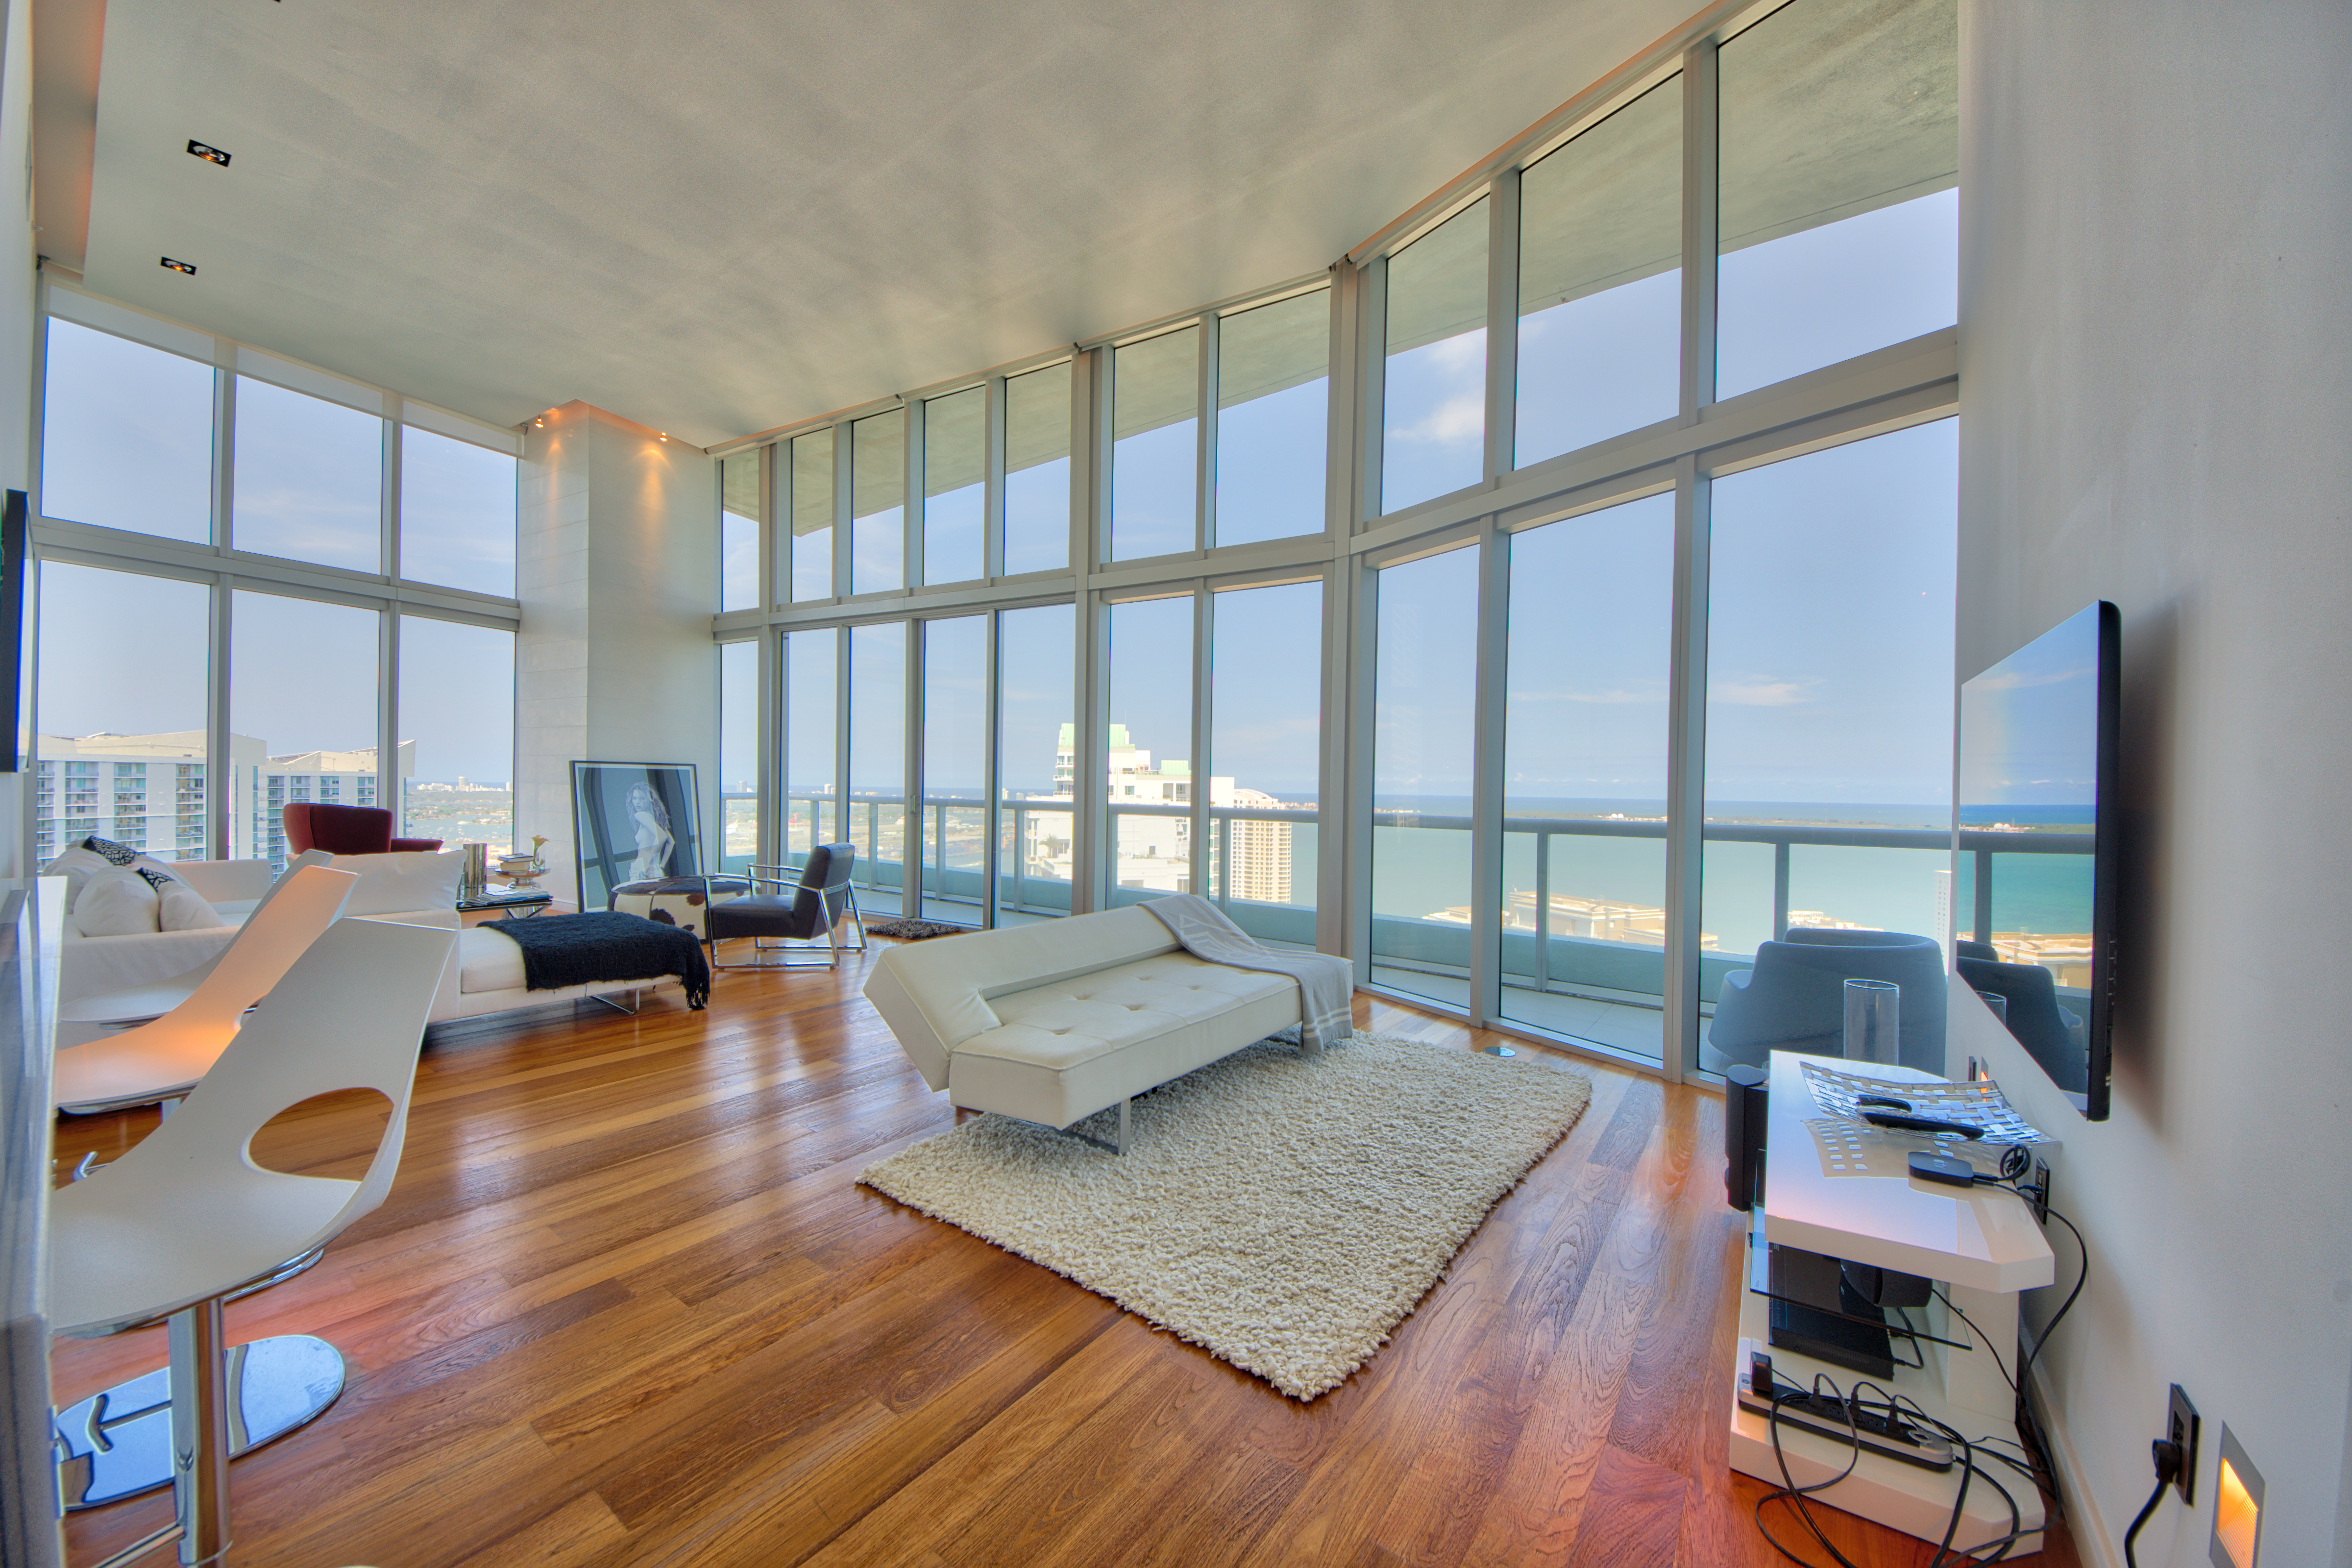 for Sale at 465 Brickell Ave #4101 465 Brickell Ave 4101 Miami, Florida, 33131 United States